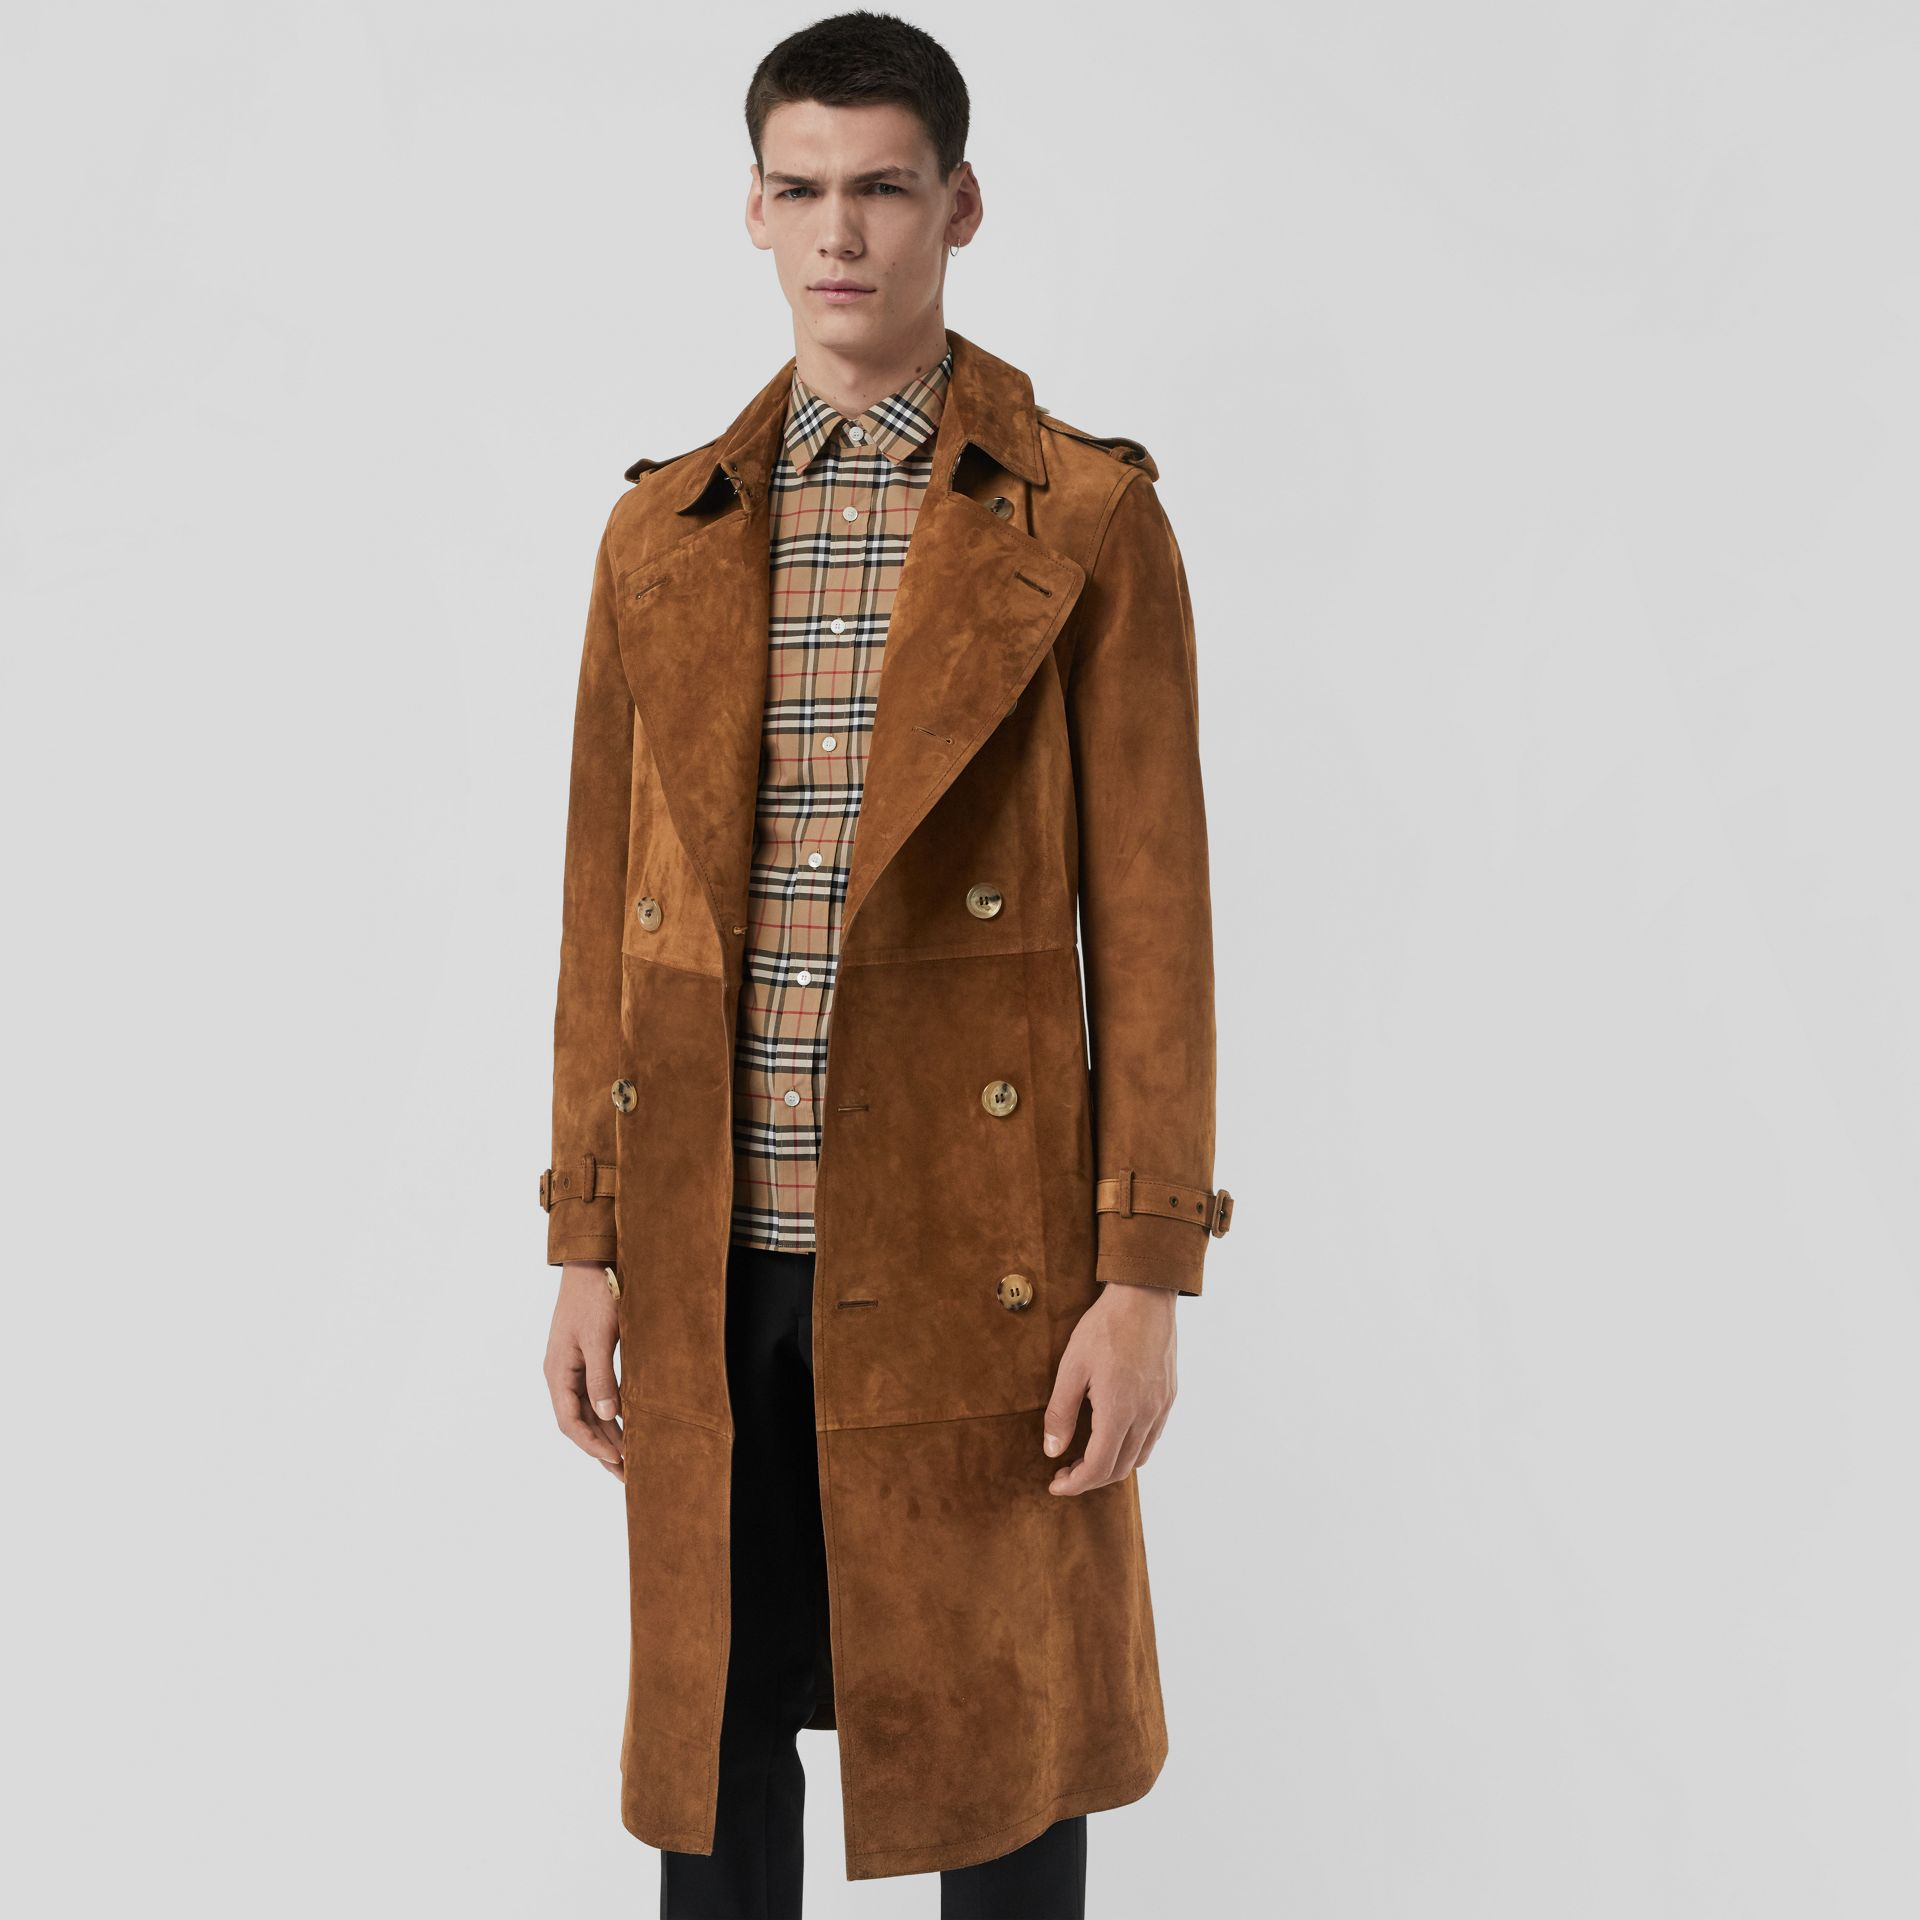 Suede Trench Coat in Sepia Brown - Men | Burberry Australia - gallery image 6